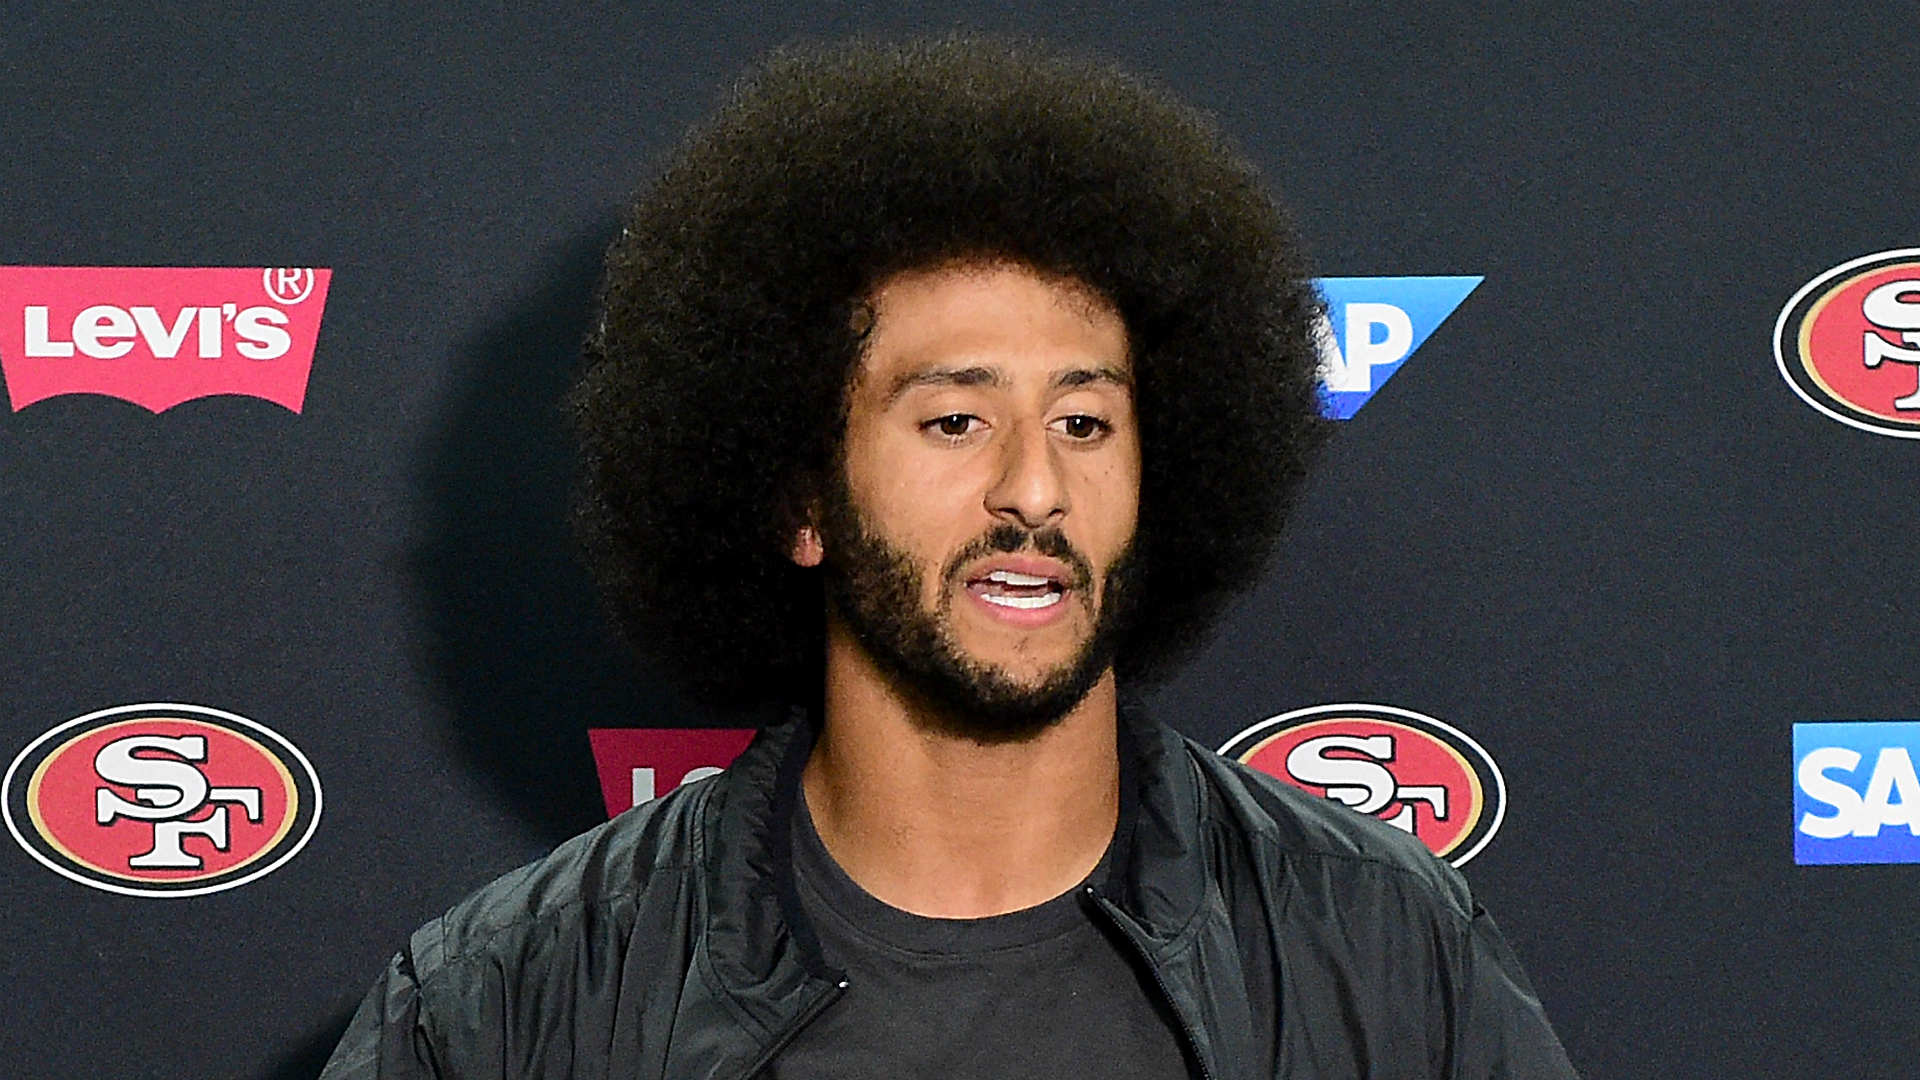 Colin-Kaepernick-090216-USNews-Getty-FTR